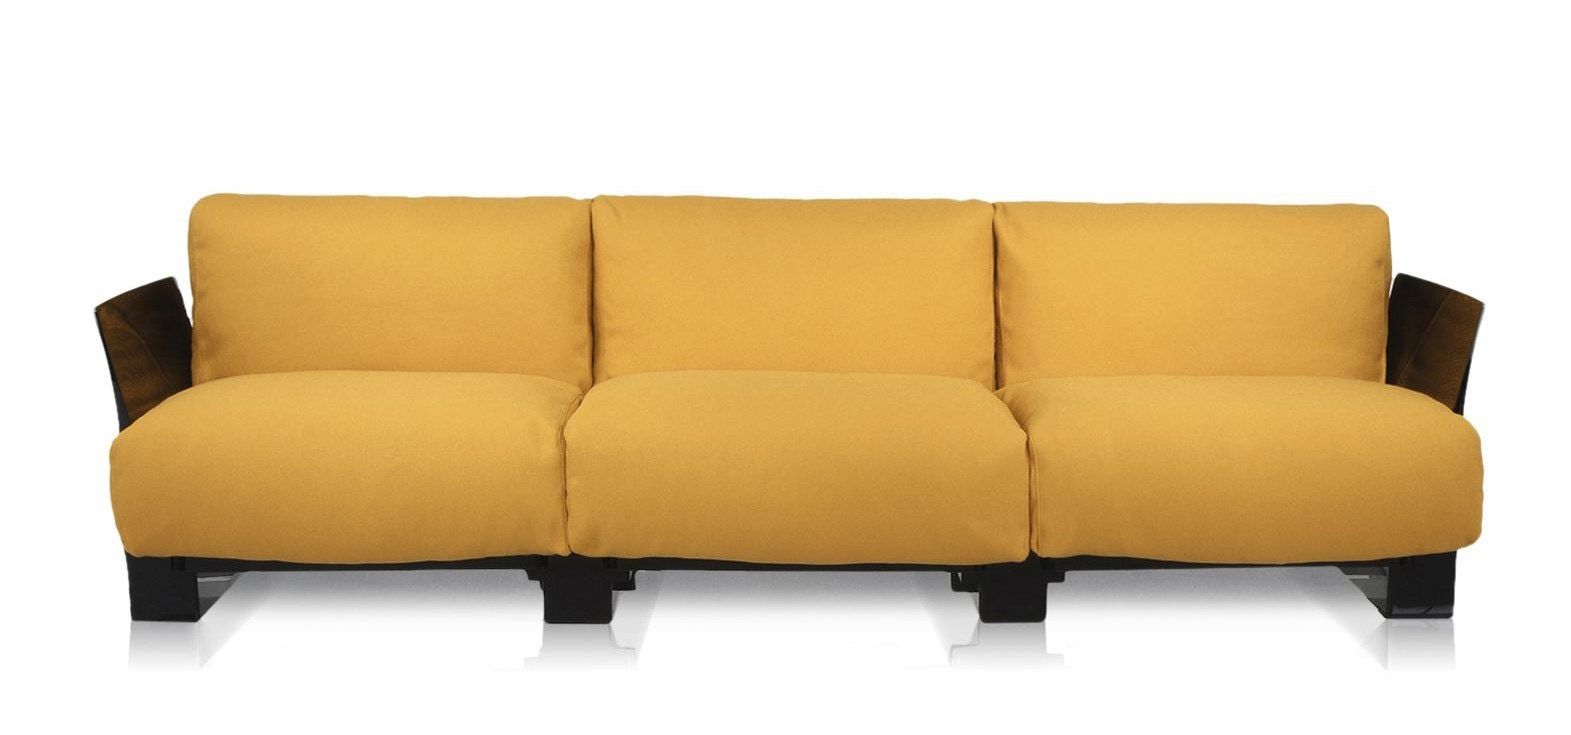 Kartell Pop Cotton & Trevira 3 Seater Sofa